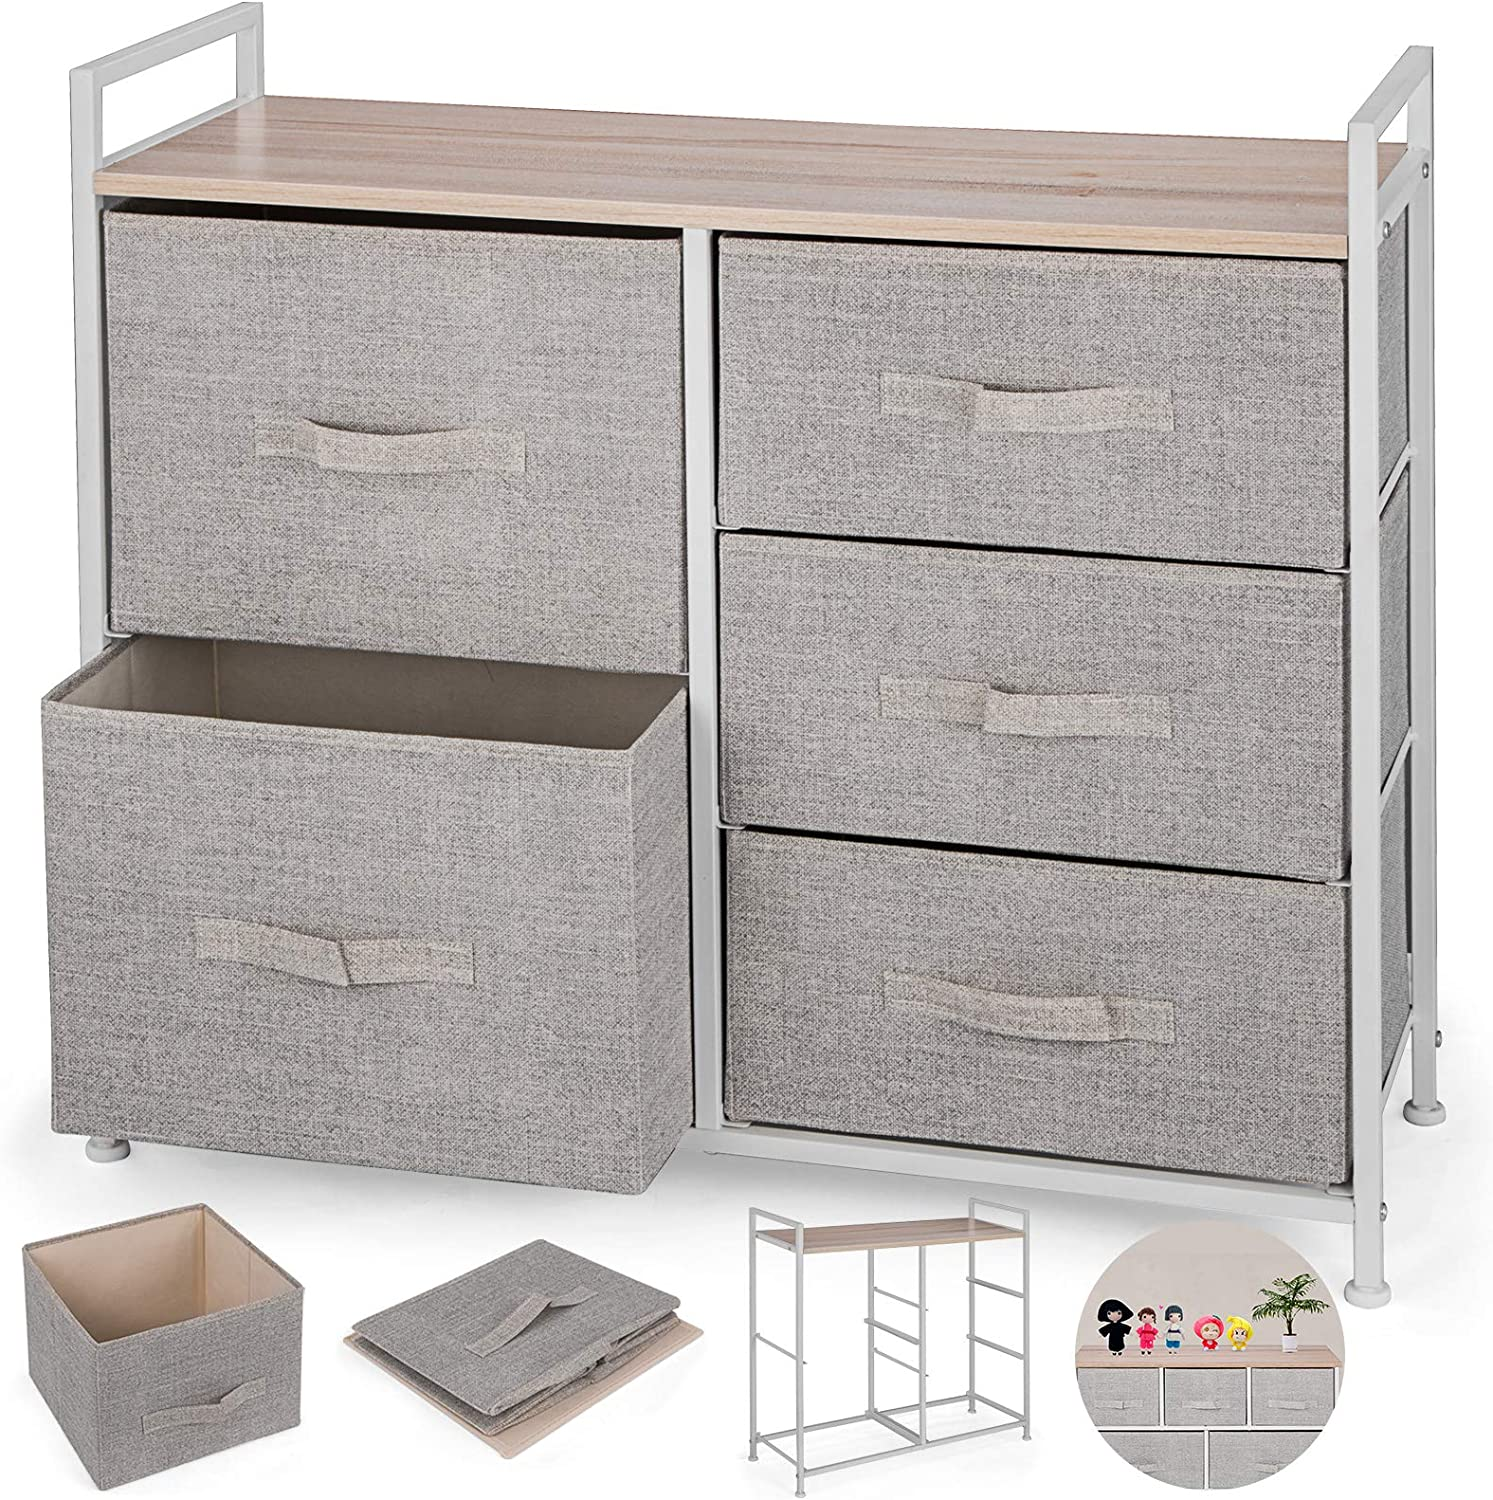 Happybuy 5-Drawer Storage Organizer Unit with Fabric Bins Bedroom Play Room Entryway Hallway Closets Steel Frame MDF Top Dresser Storage Tower Fabric Cube Dresser Chest Cabinet (Beige Tall)